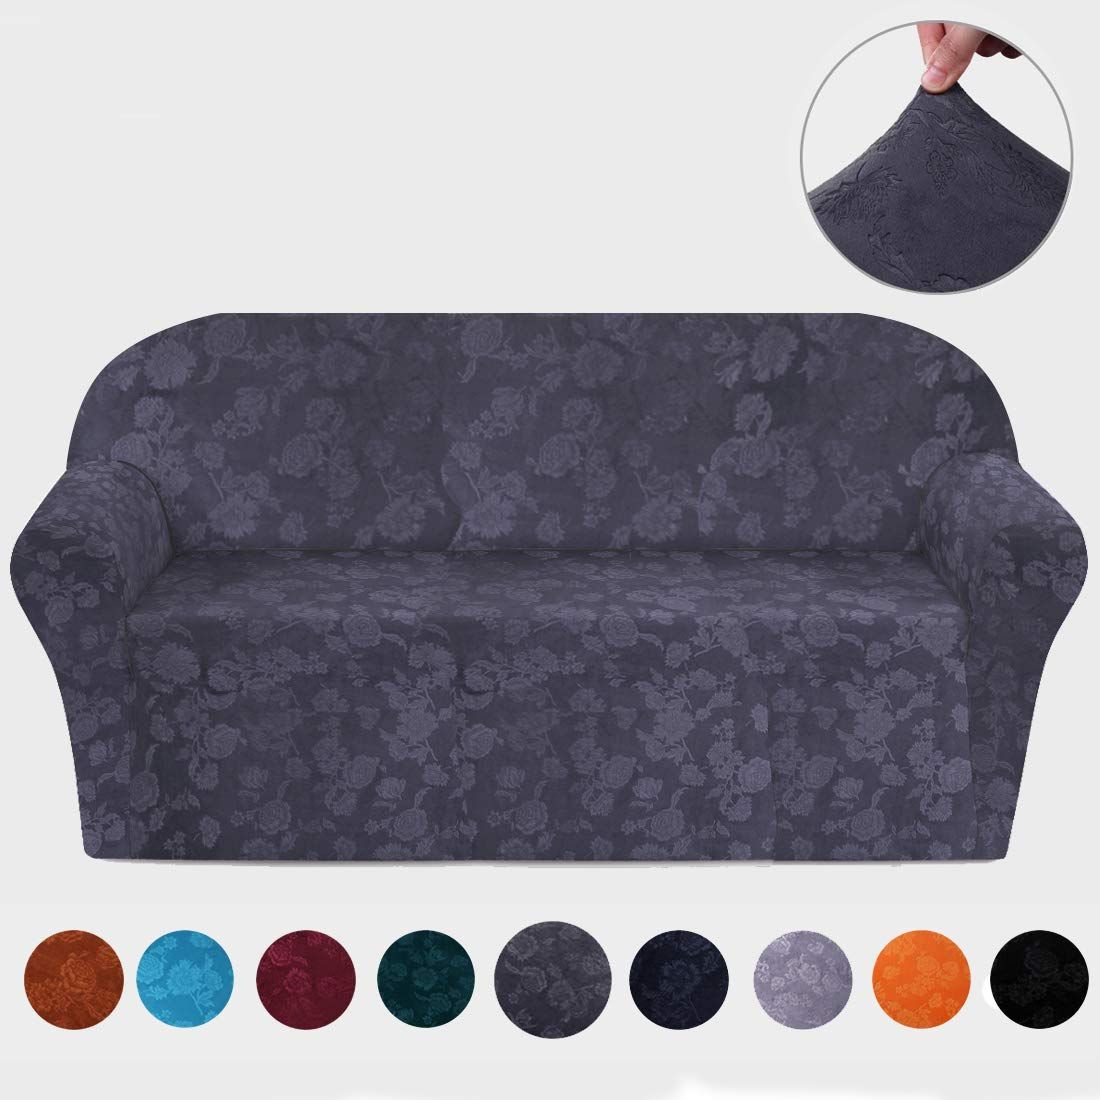 Amazon Com Misaya Stretch Sofa Cover Soft Non Slip Furniture Protector Velvet Embossing Flower 1 Piece Couch Slipcove Slip Covers Couch Slipcovers Sofa Covers